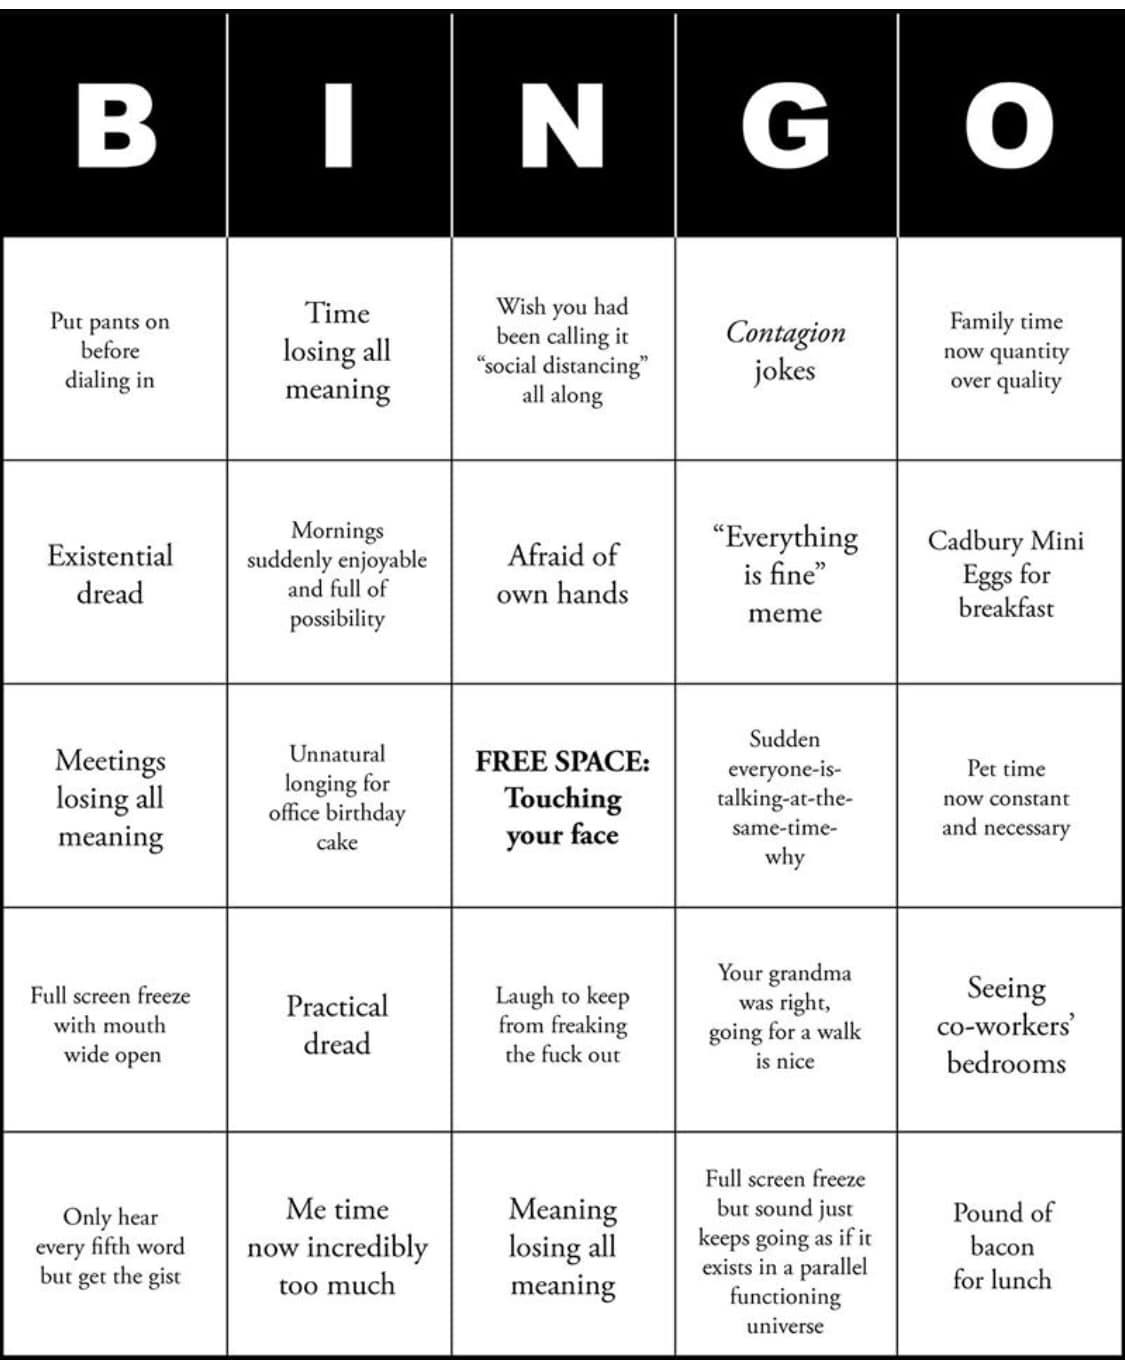 work-from-home-bingo